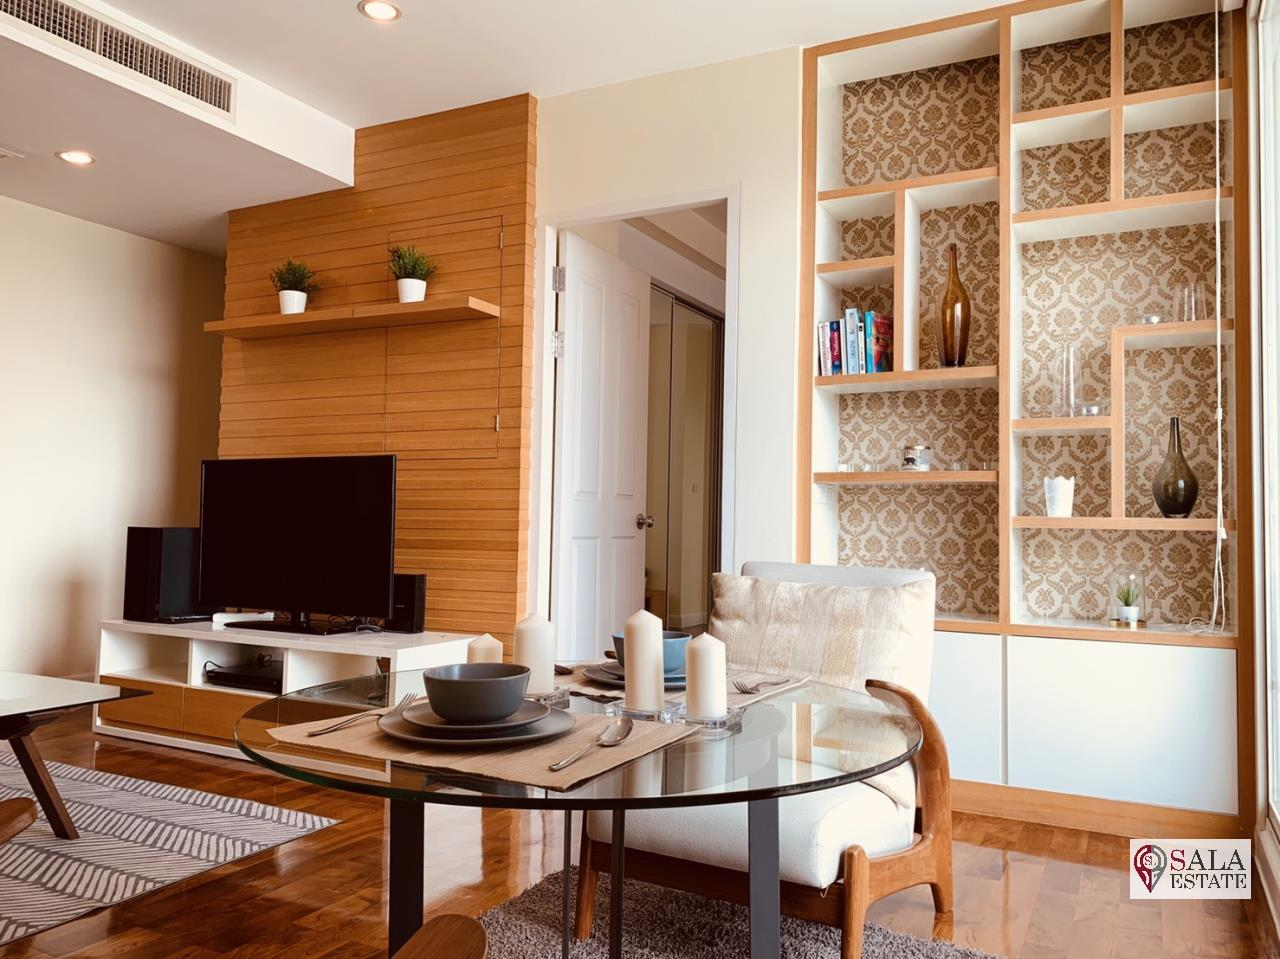 SALA ESTATE Agency's ( FOR RENT ) BAAN SIRI 31 – BTS PHROM PHONG, 58 SQM 1 BEDROOM 1 BATHROOM, FULLY FURNISHED, CITY VIEW 5